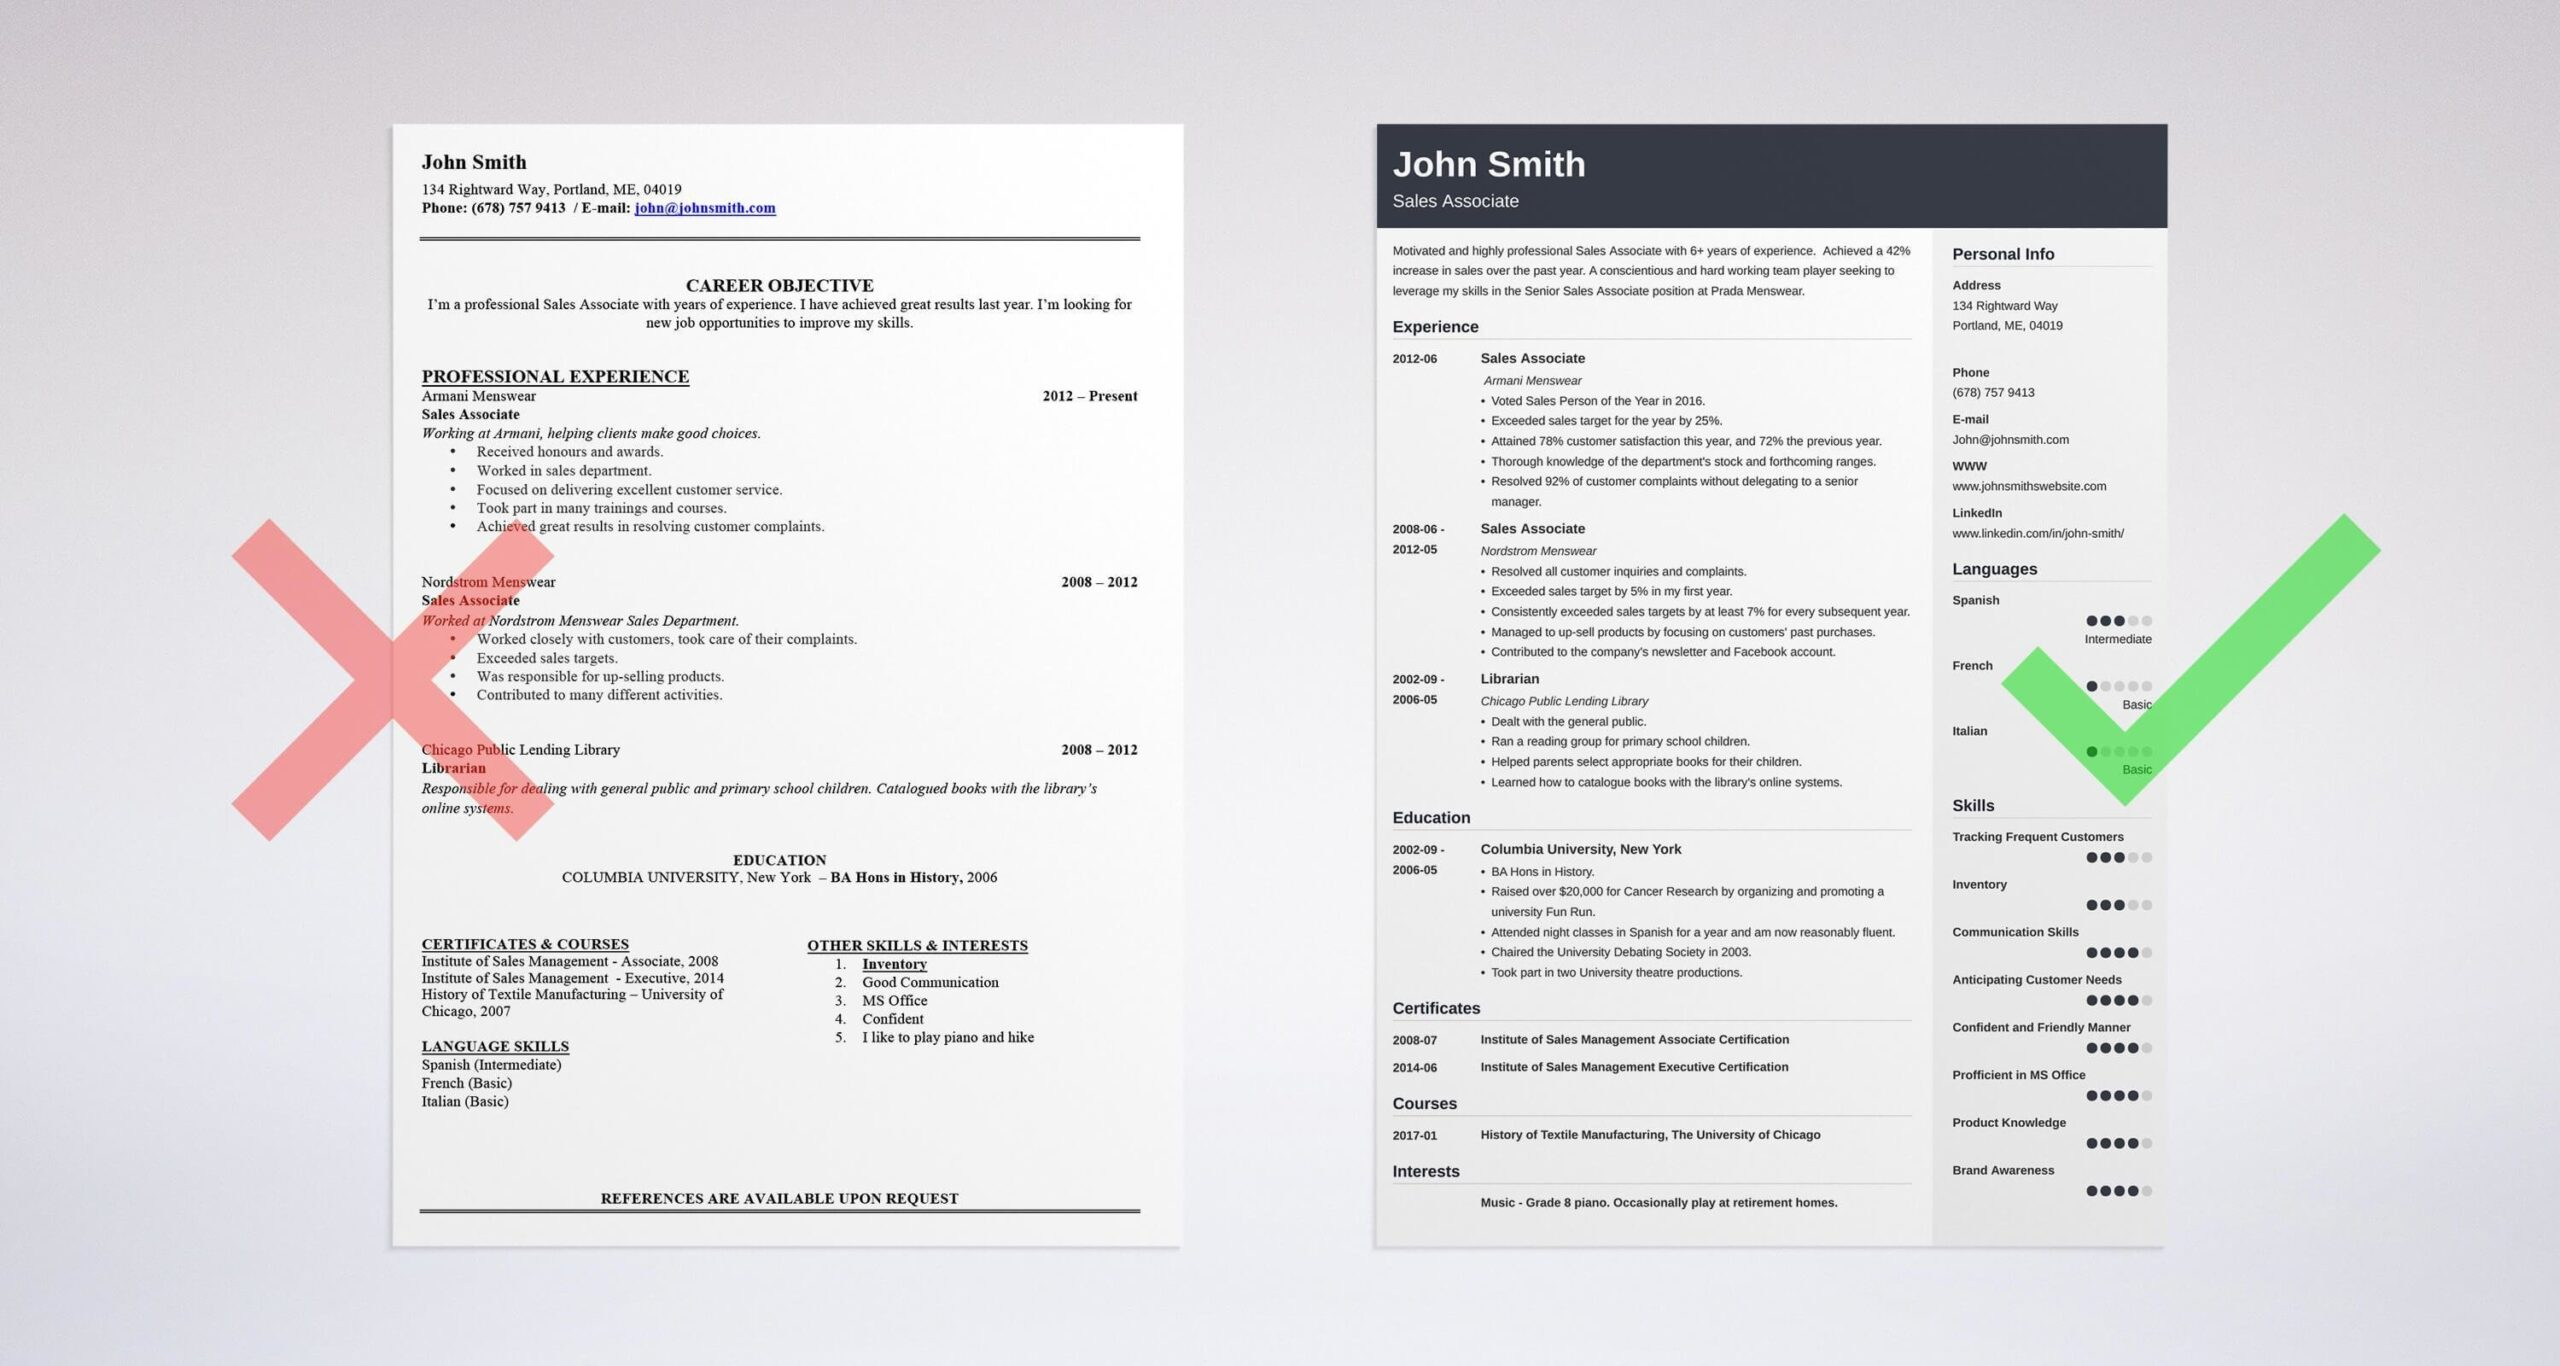 professional resume summary examples statements template free on cubic nozoom photoshop Resume Resume Summary Template Free